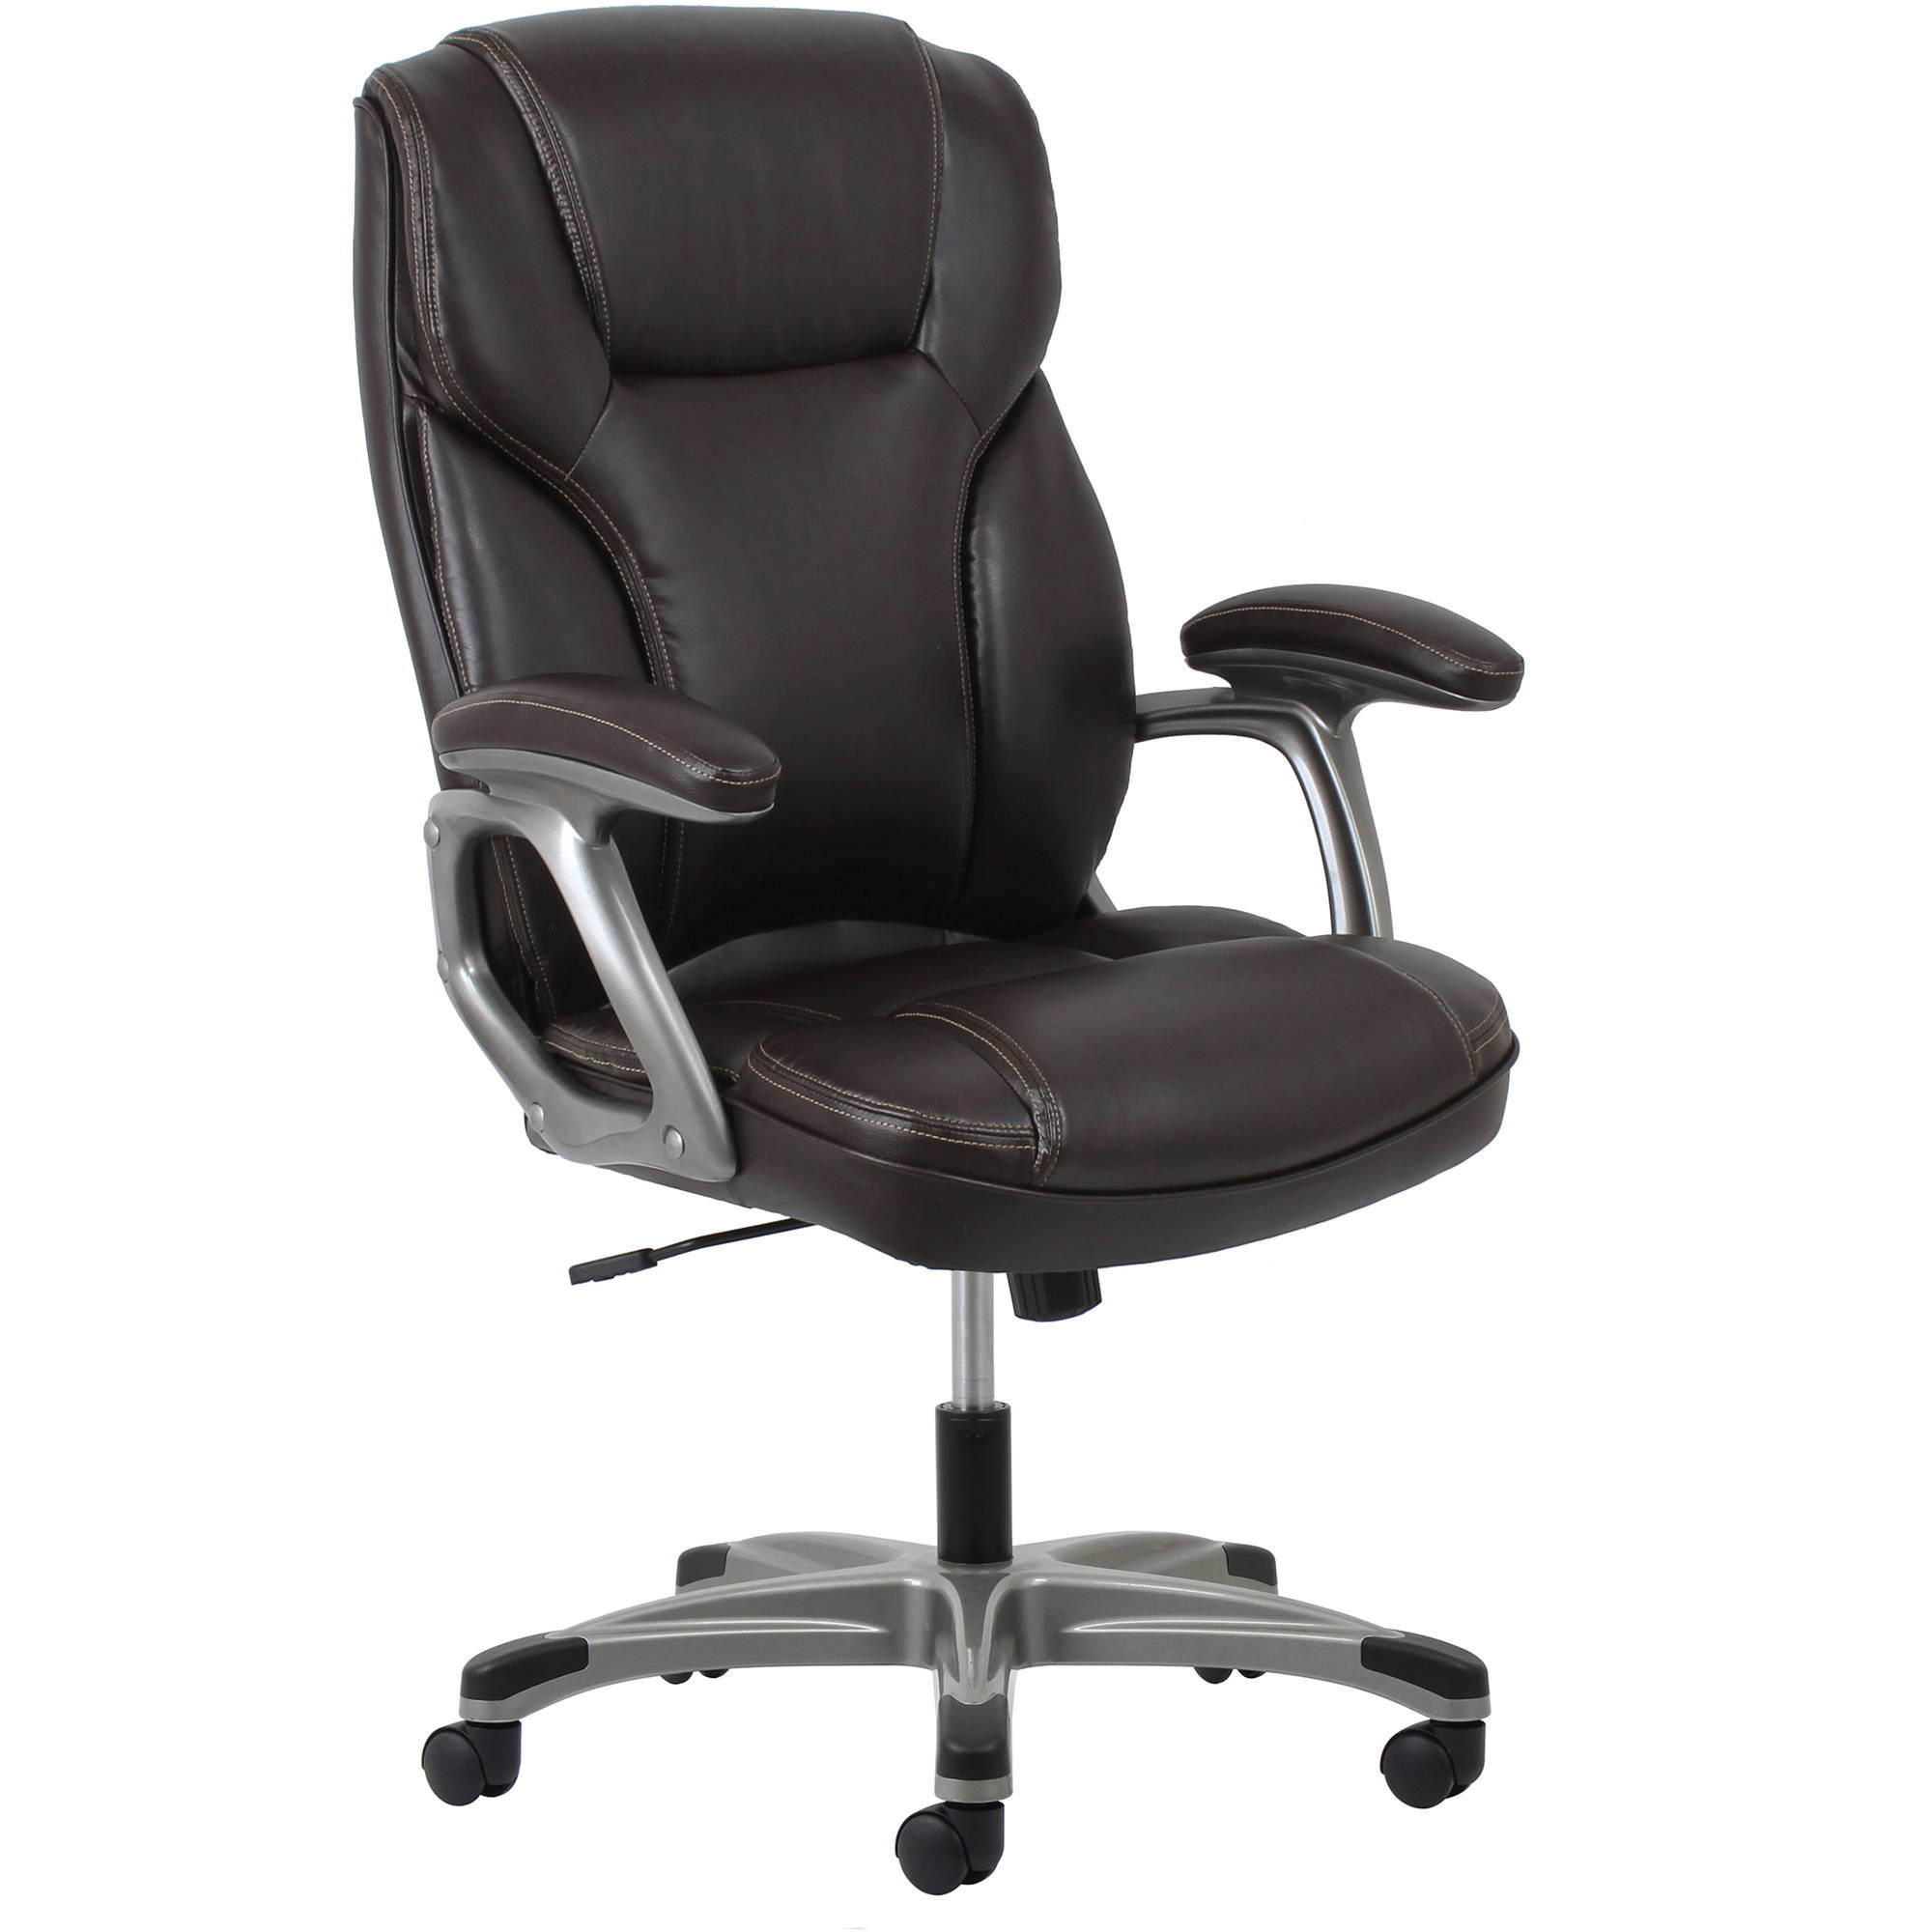 Essentials by OFM Ergonomic High-Back Leather Executive Office Chair with Arms, Brown/Silver